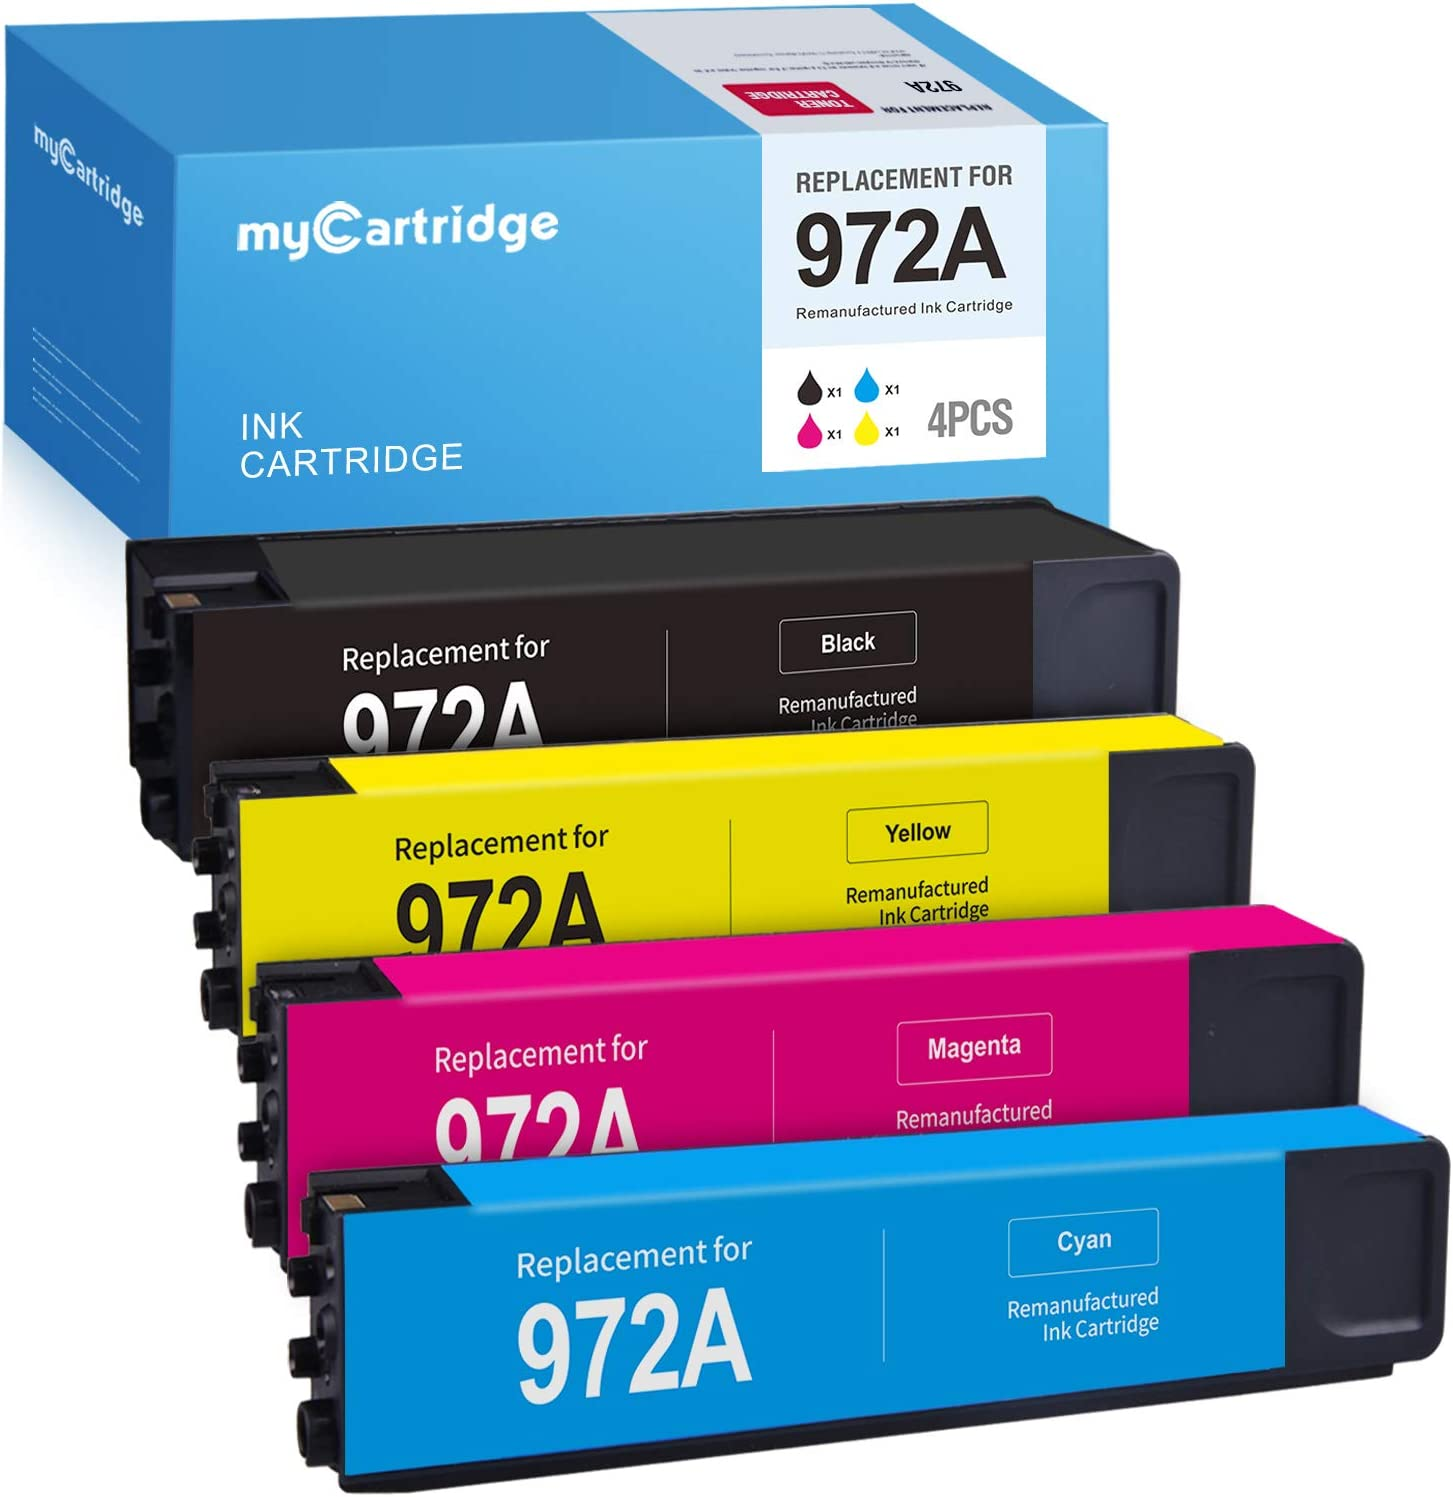 MYCARTRIDGE Remanufactured Ink Cartridge Replacement for HP 972 972A use with PageWide Pro 477dw 577dw 377dw 477dn 452dn 452dw 552dw Black Cyan Magenta Yellow (4-Pack)